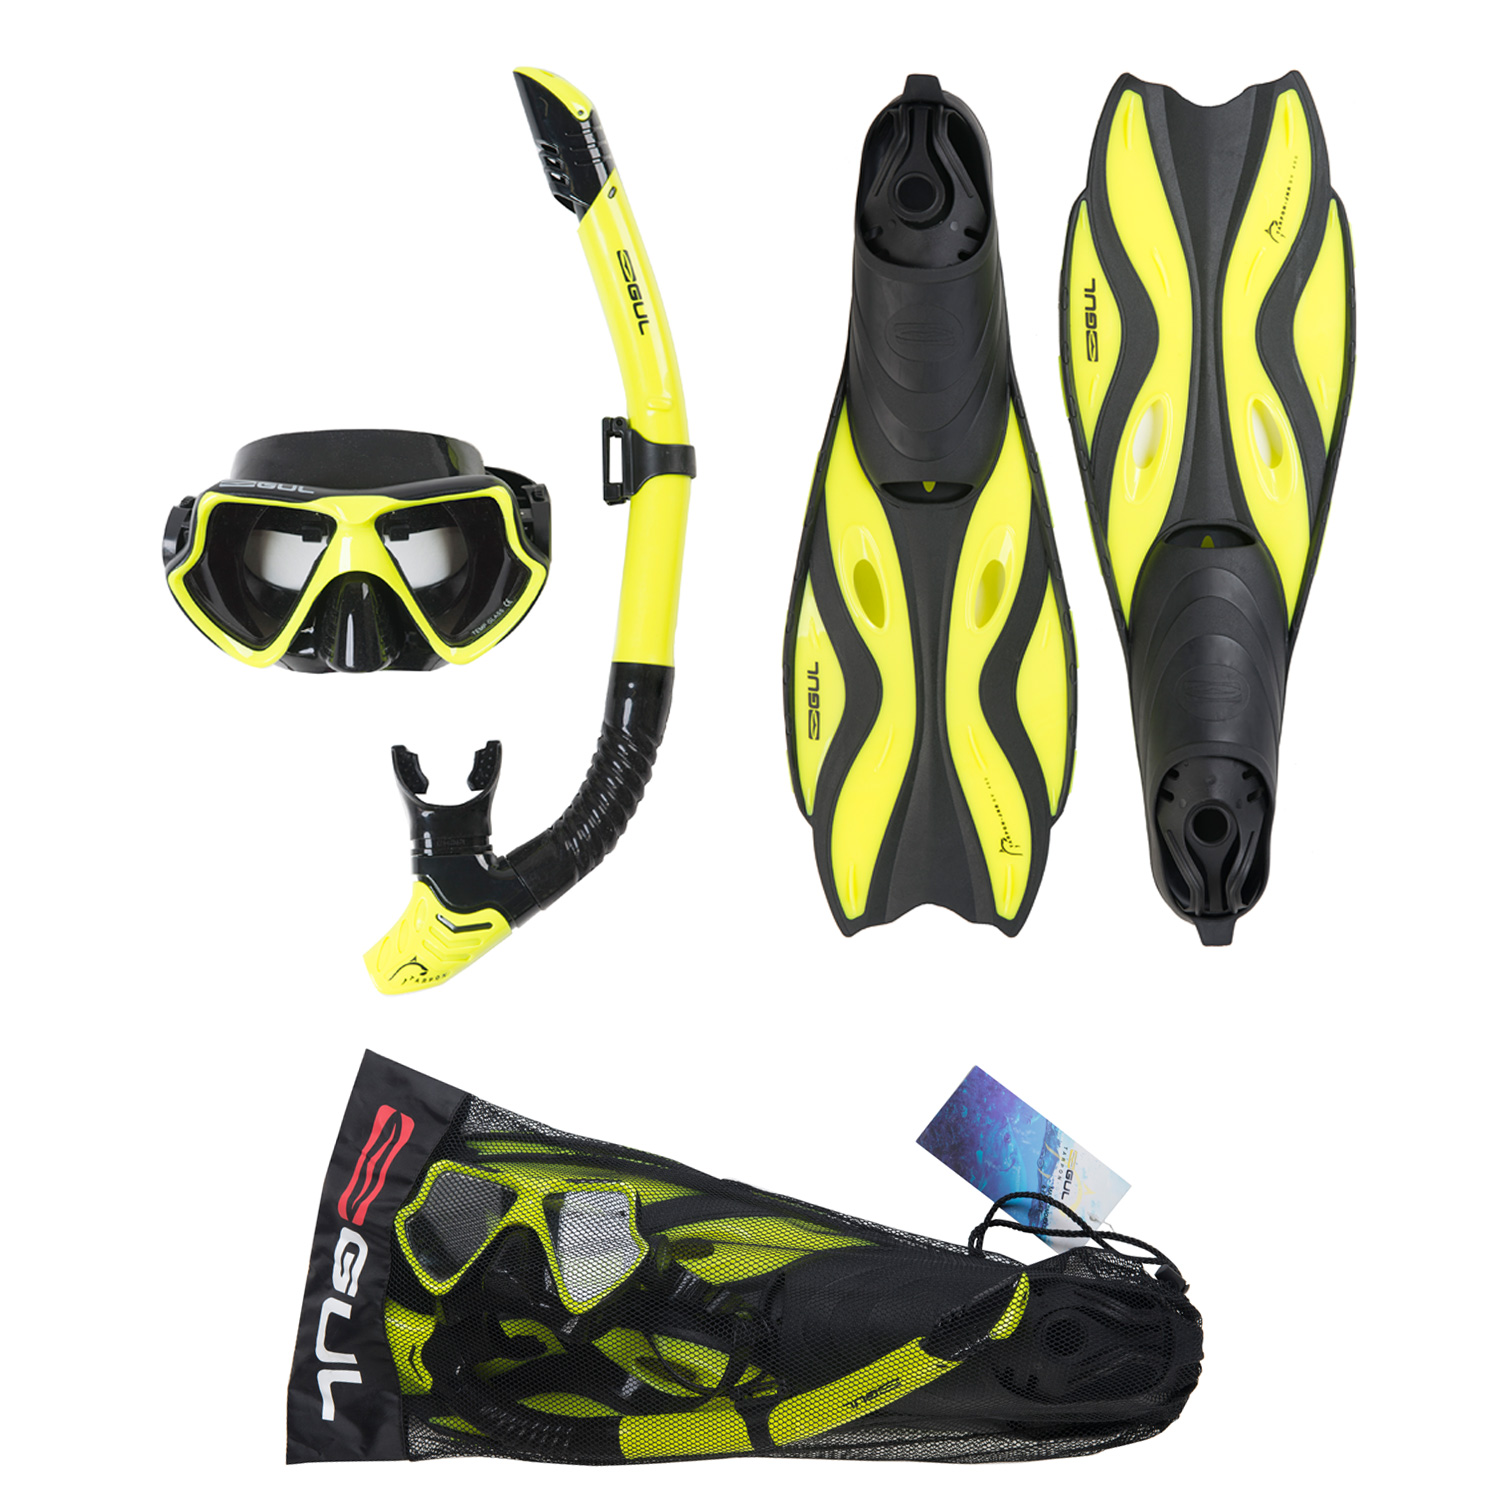 Details about Gul Tarpon Adult Mask Snorkel Fins Set Silicon Snorkelling  Swimming Diving 4e6b533f1